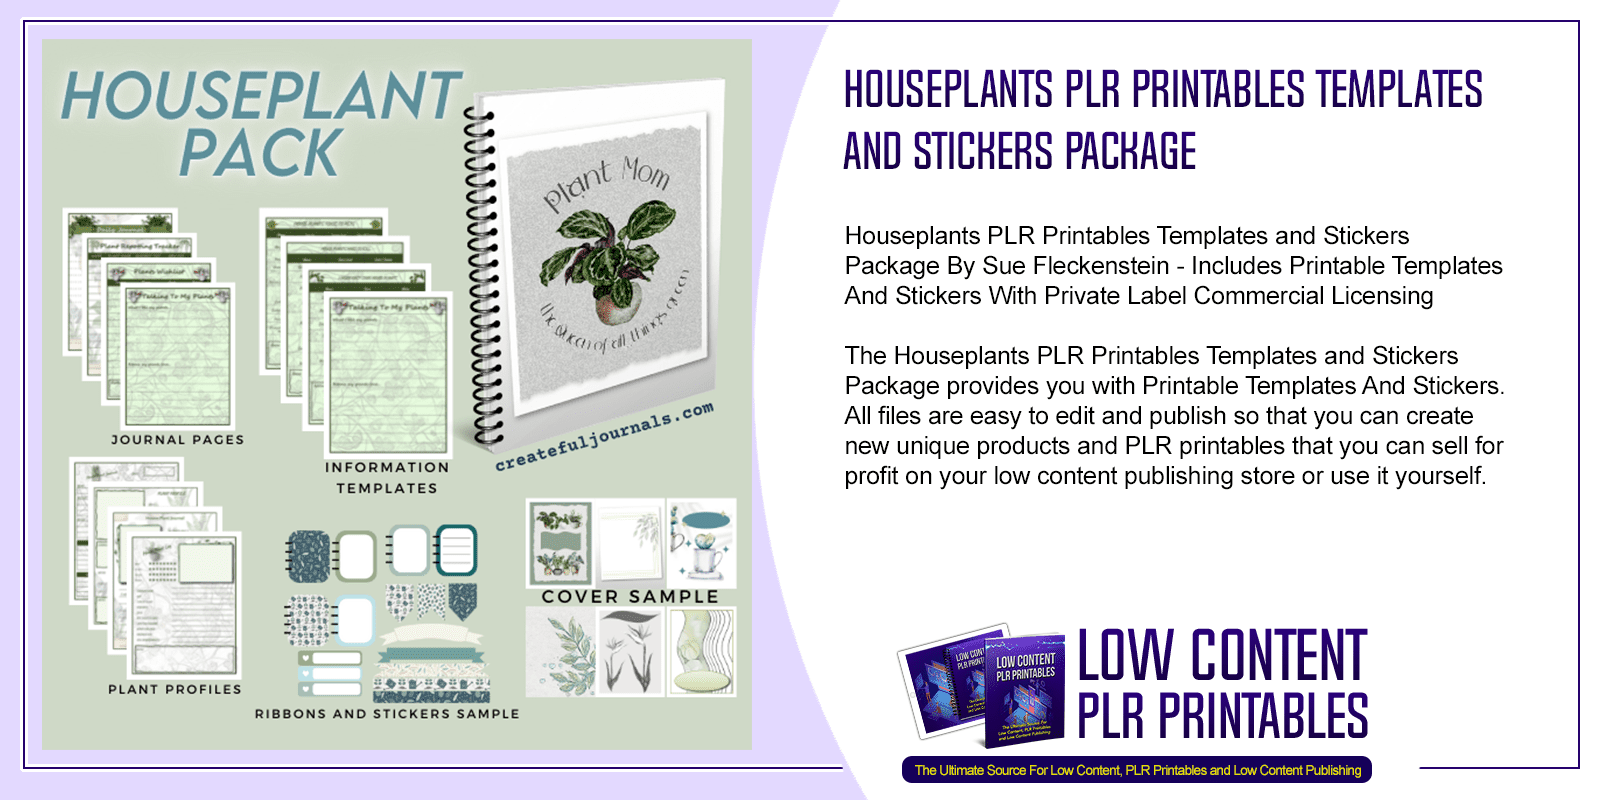 Houseplants PLR Printables Templates and Stickers Package 2